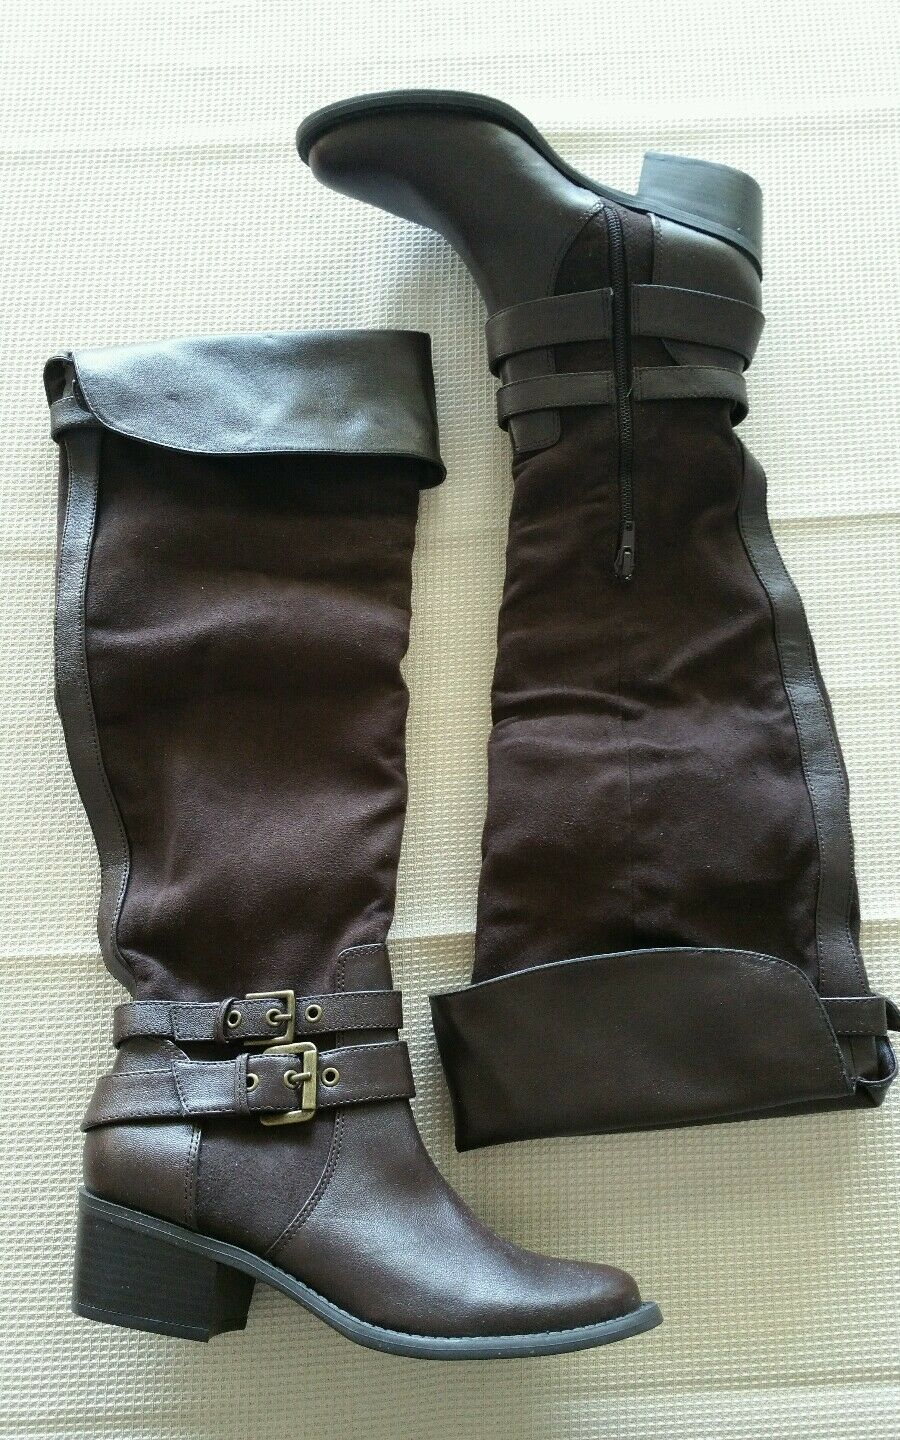 Style & Co Rodney 5.5 M Brown boots buckle detail half side zip up knee high New